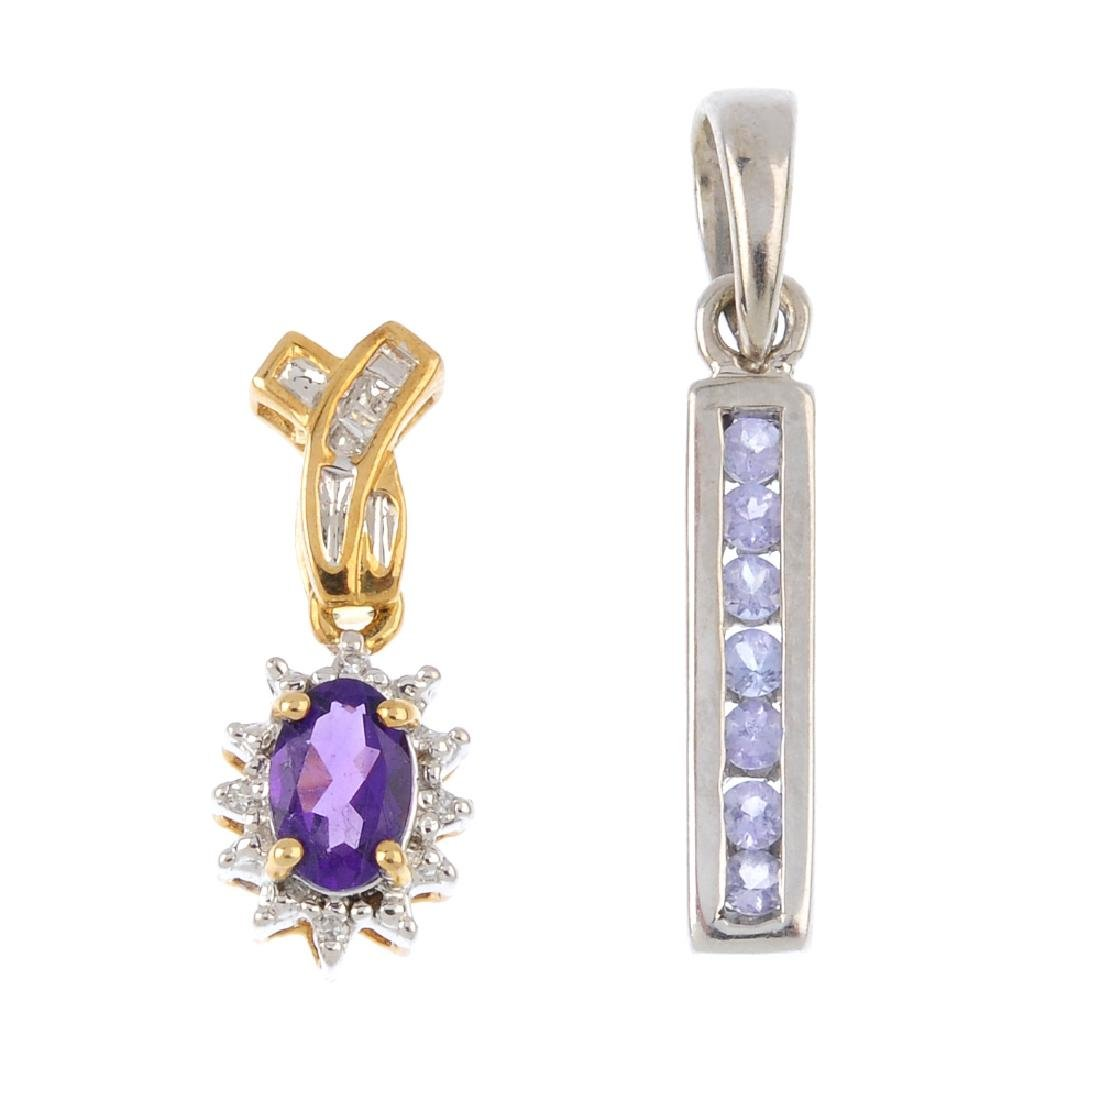 A tanzanite necklace and two 9ct gold diamond and